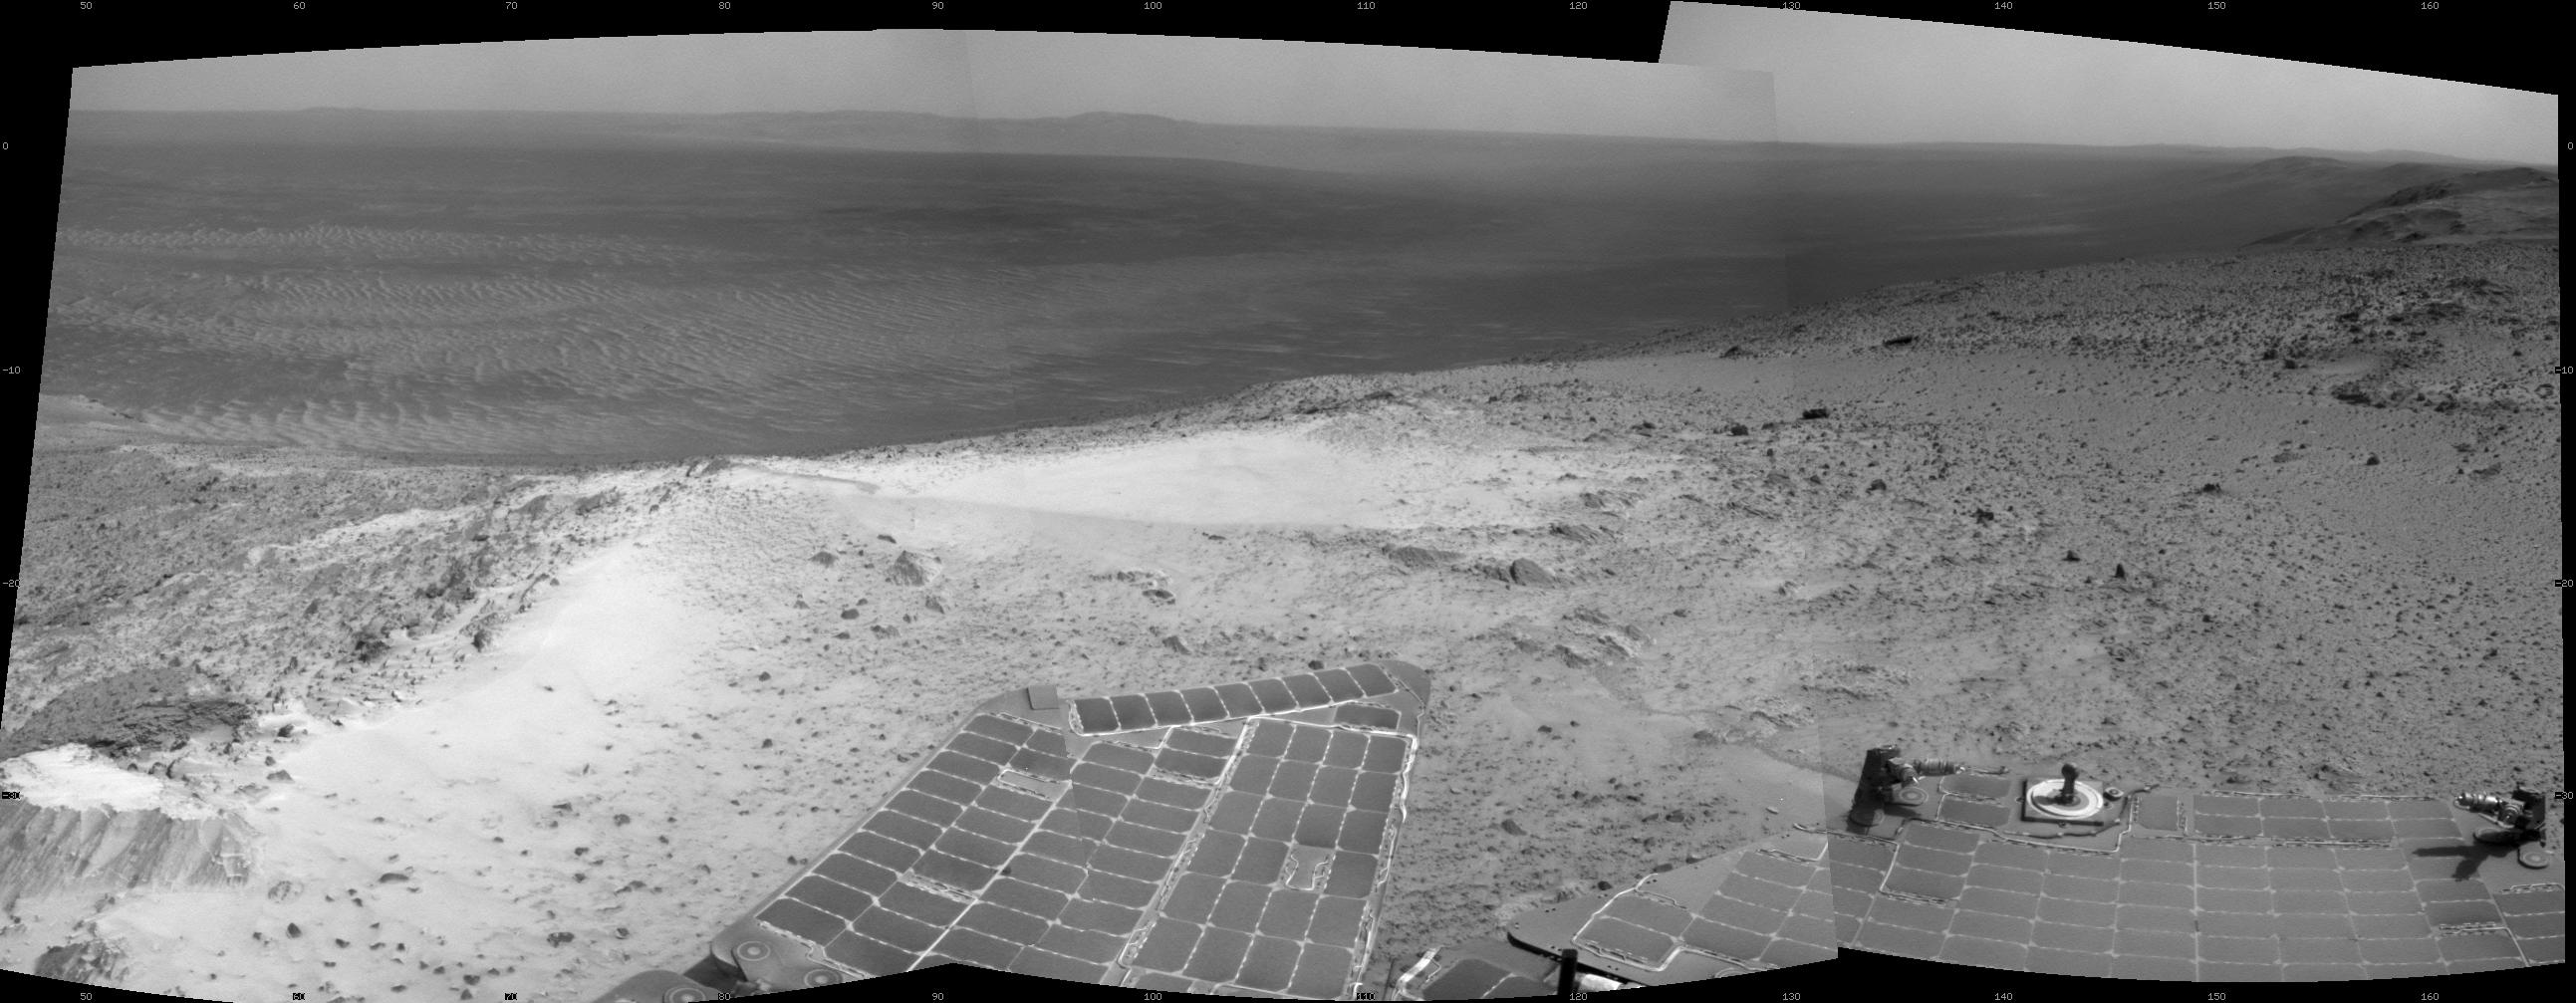 footage of mars landing today - photo #39